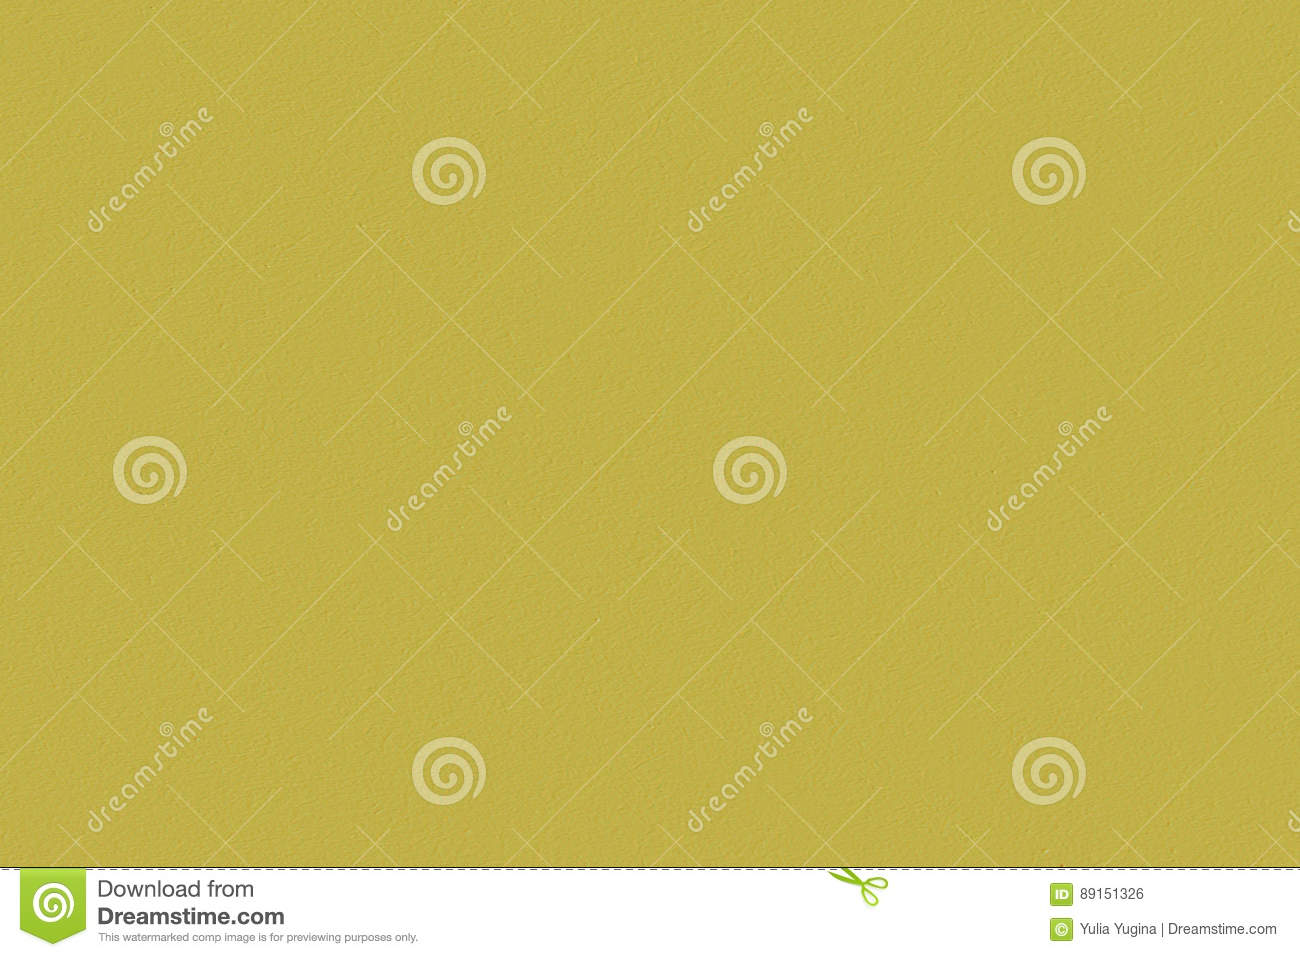 Painted Empty Sheet Of Plywood Mustard, Yellow-brown Color